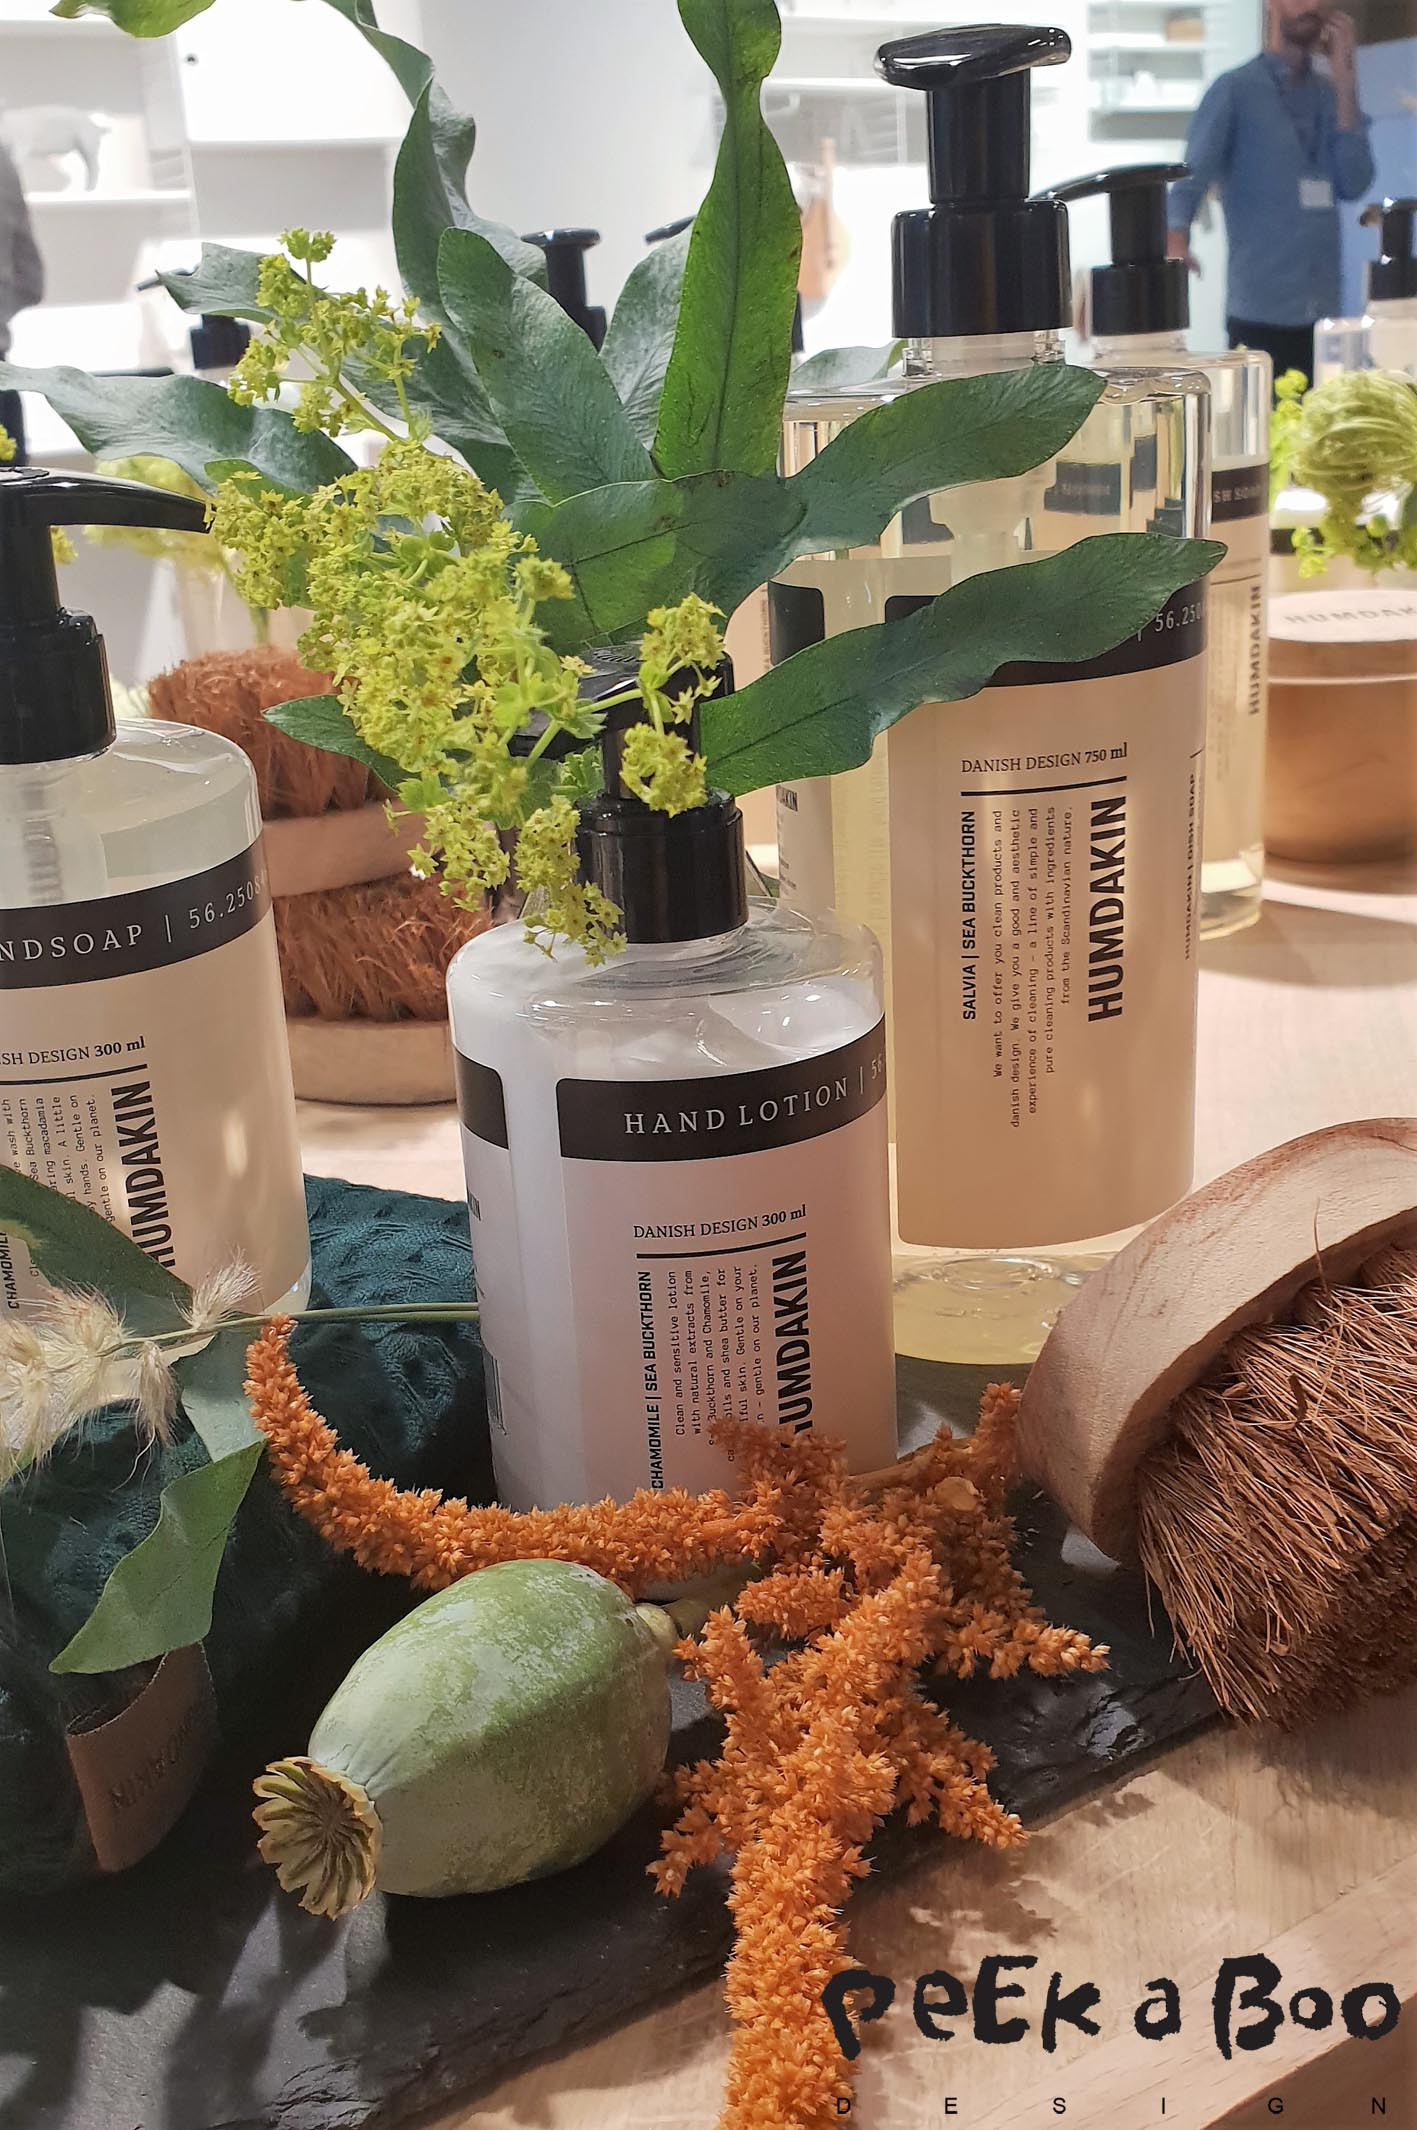 Cleaning the environmental friendly way. And even get a pleasent scent afterwards. It is the danish brand Humdakin's mission to make cleaning fun again.